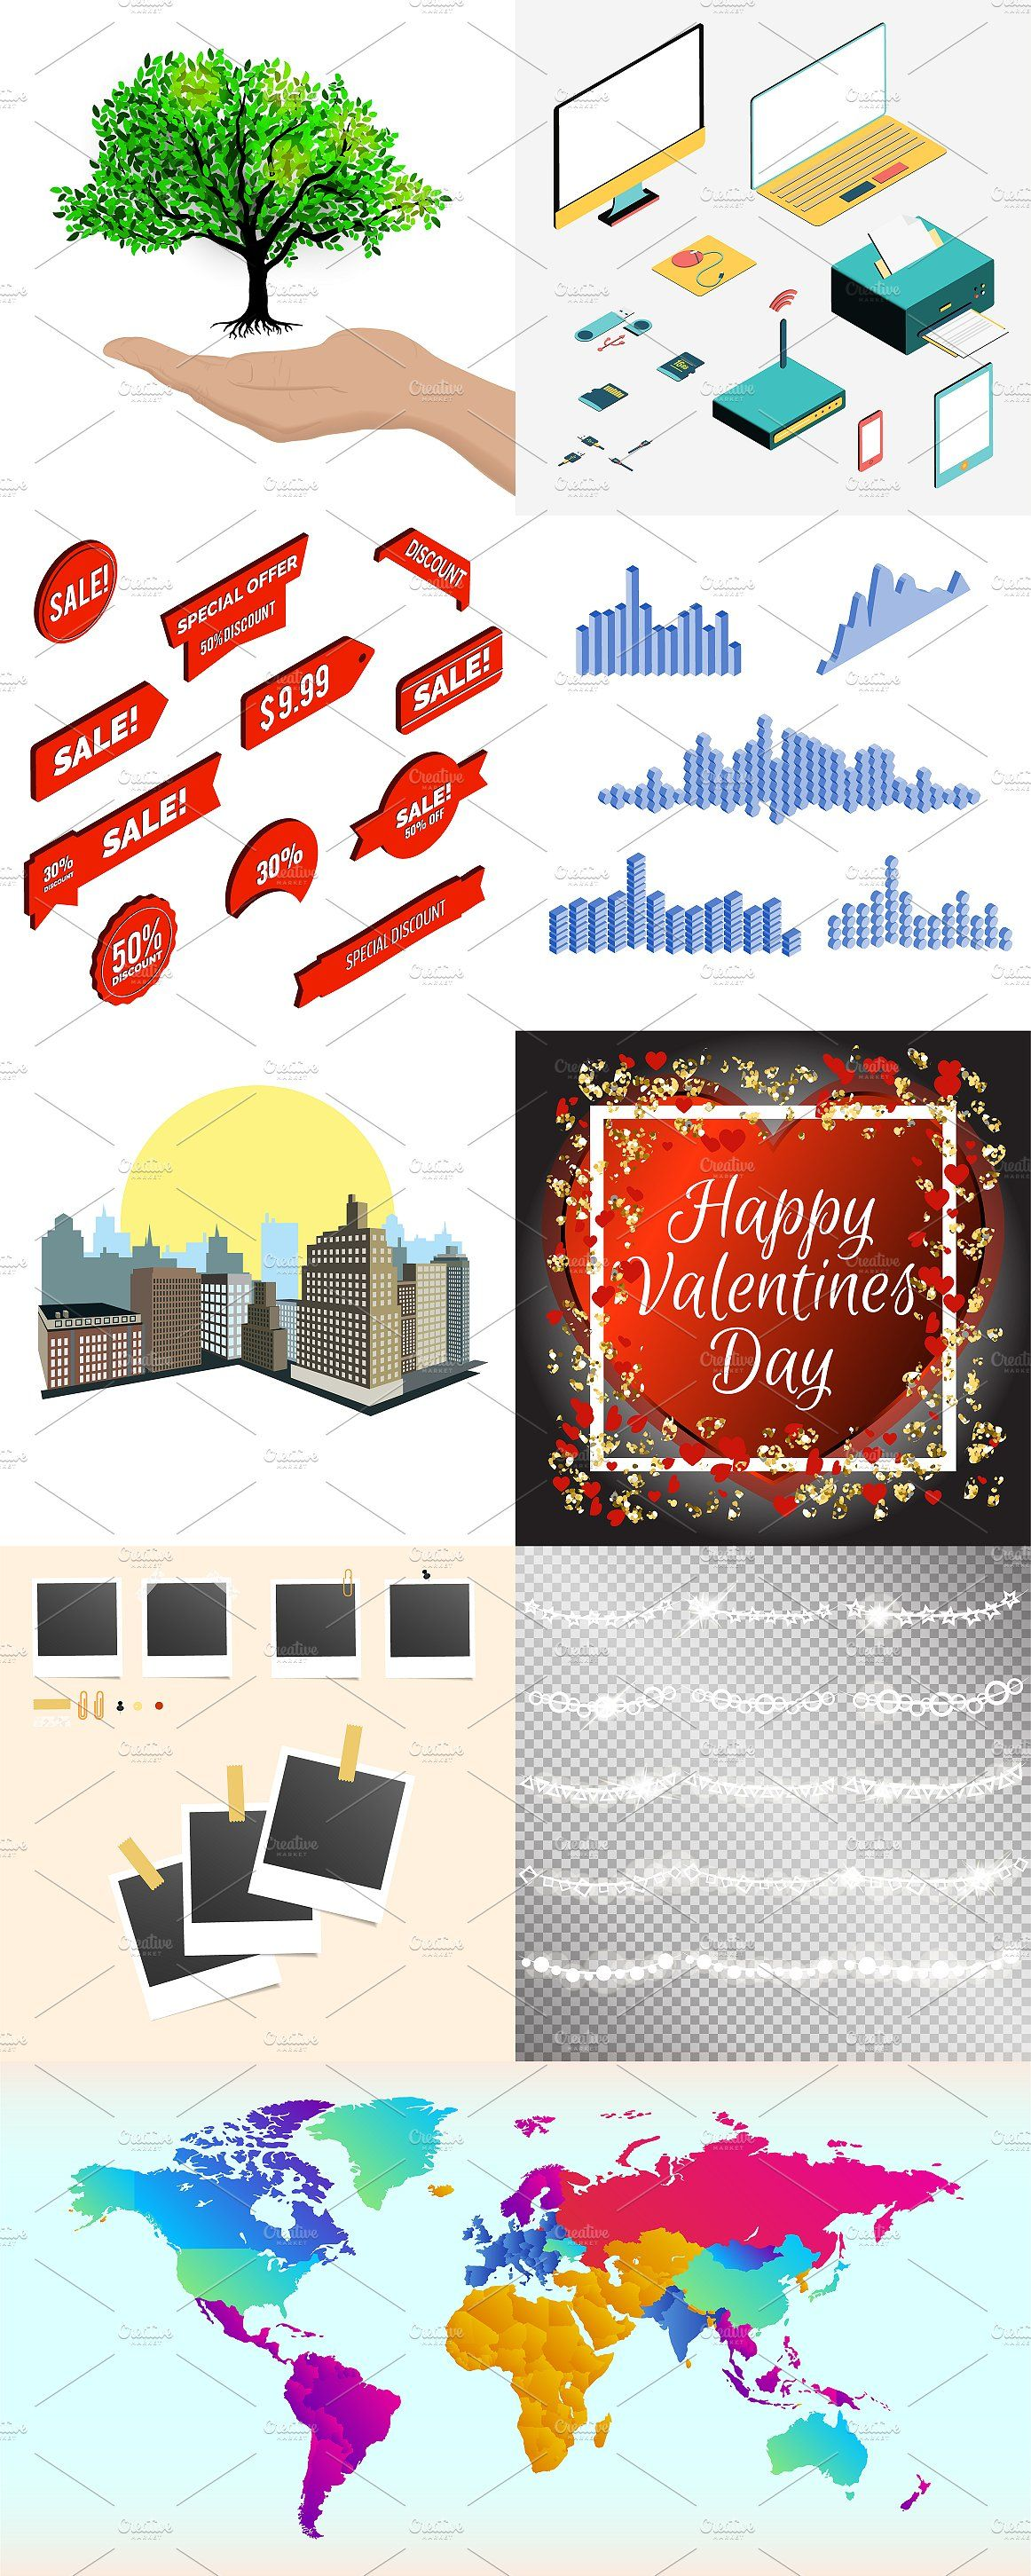 My vectors by big bundles shop on creativemarket this bundle my vectors by big bundles shop on creativemarket this bundle includes vector objects on transparent background glitter and gold light effects vector smoke gumiabroncs Choice Image